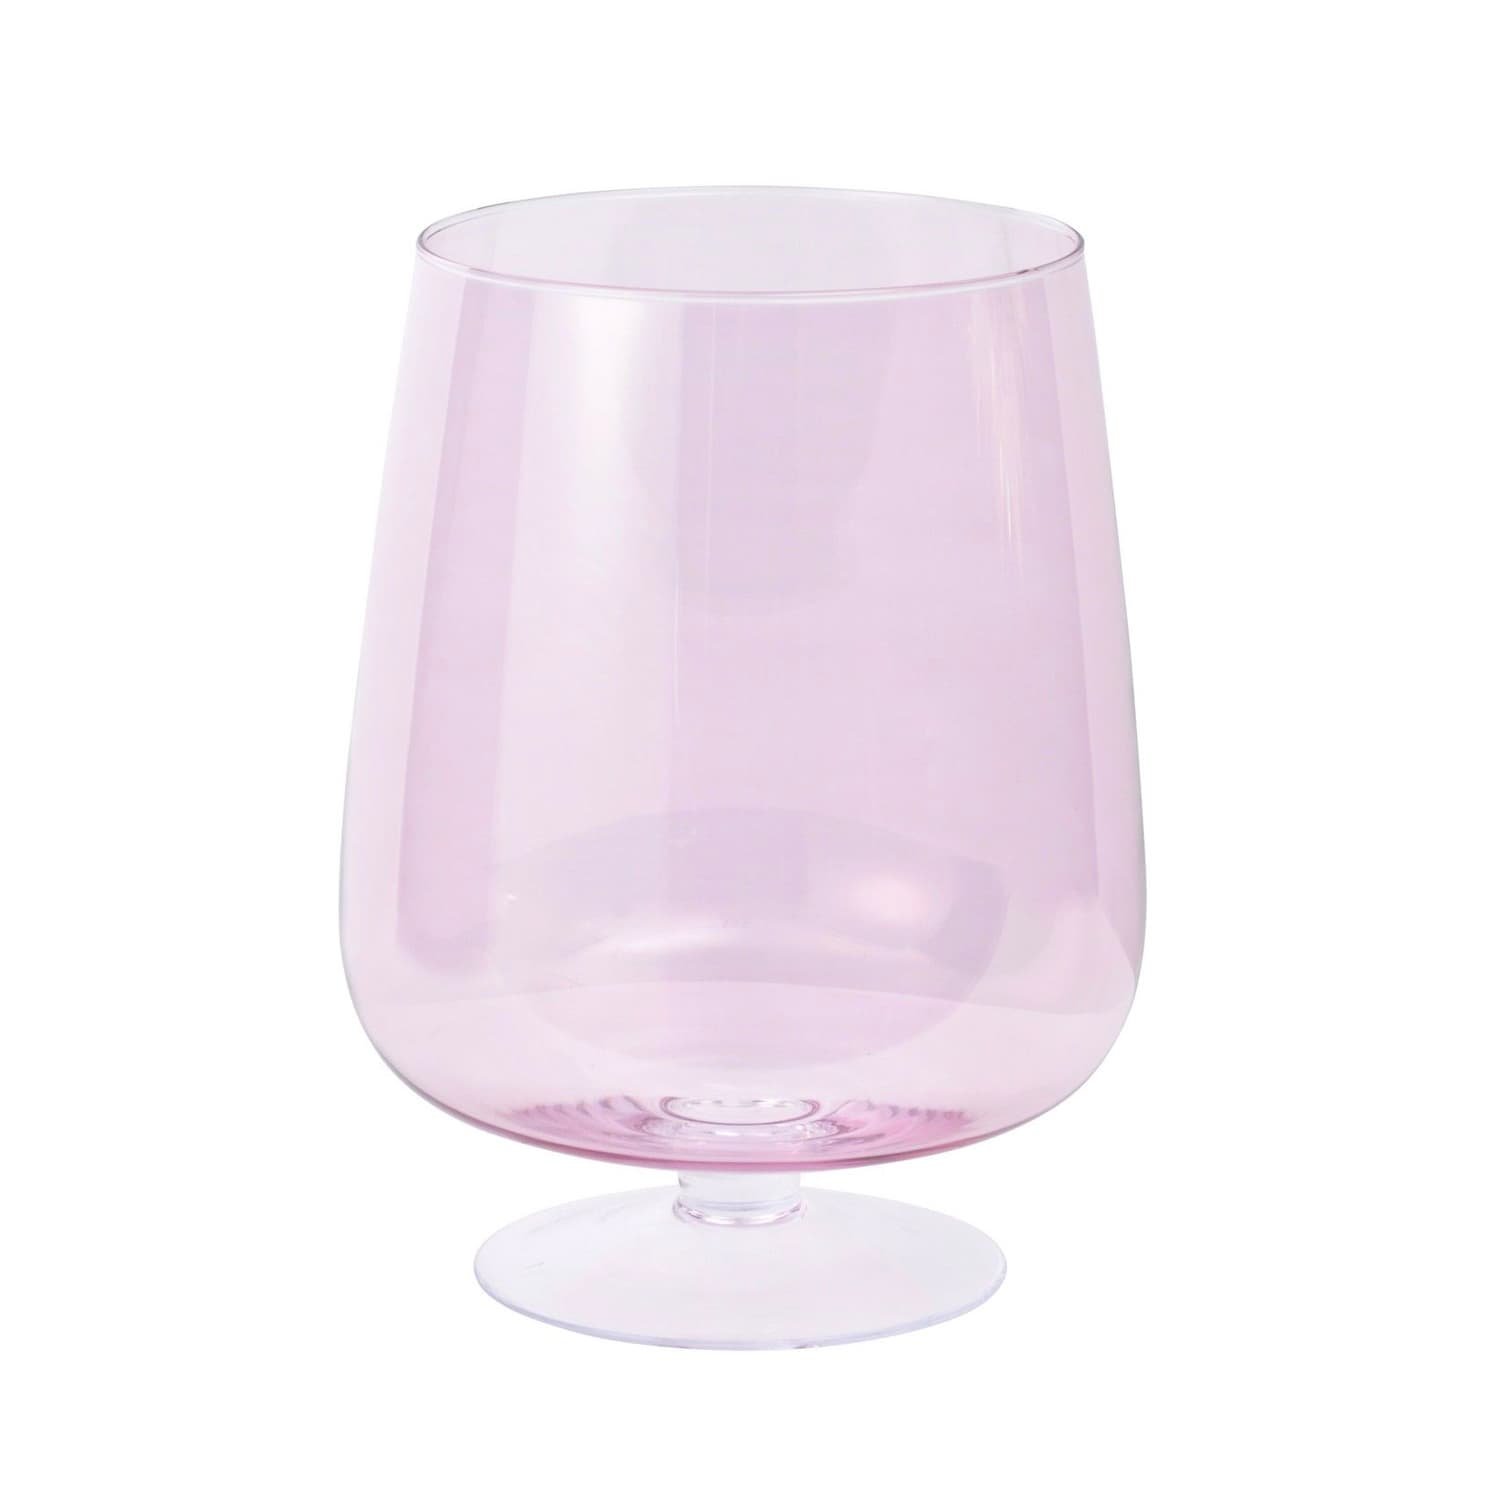 The Libra Company Pink Hand-Blown Glass Hurricane Vase